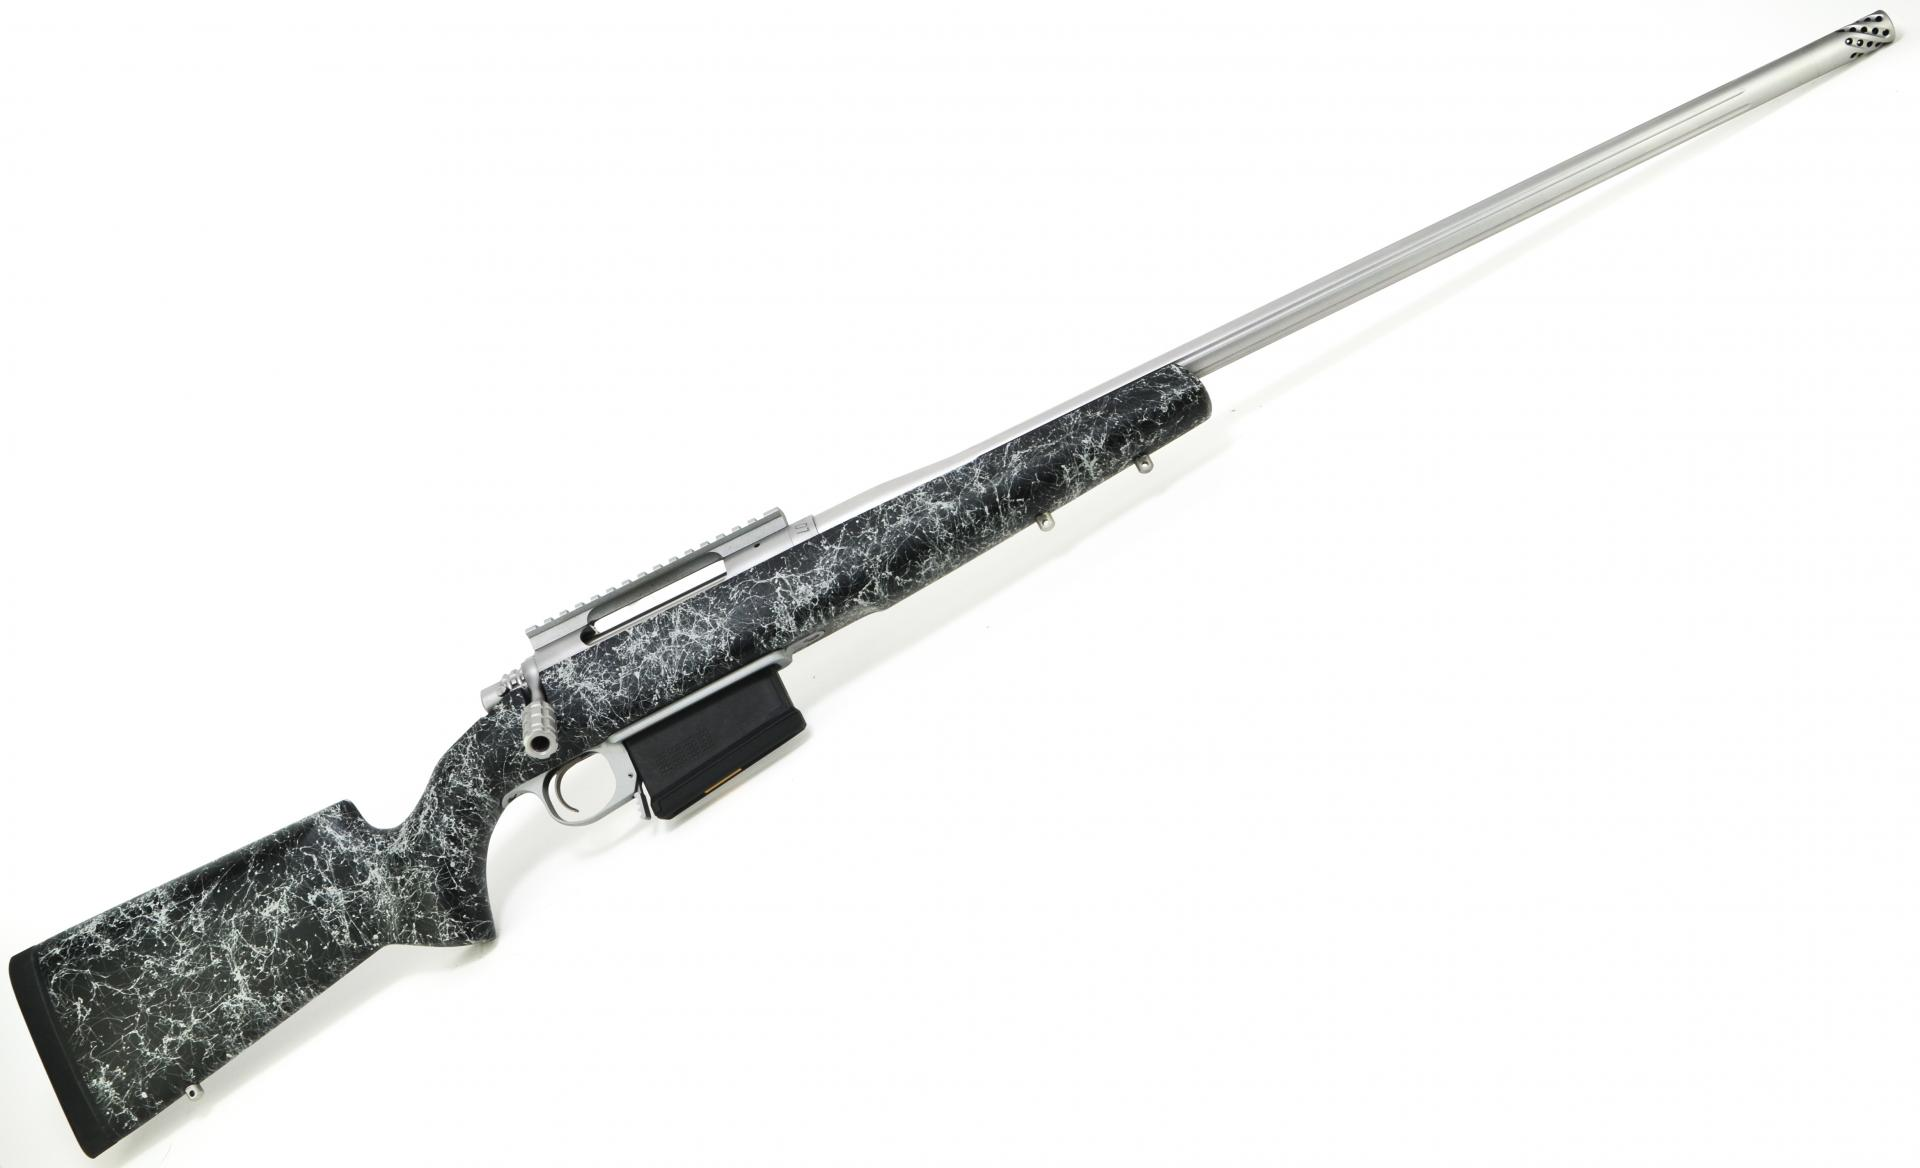 "Cooper Model 52 OPC Open Country Long Range| 300 Win Mag 26"" Stainless Fluted Barrel w/ Muzzle Brake, Black w/Grey Webbing Stock, 1 Piece 10 MOA Picatinny Rail, Tactical Bolt Knob"